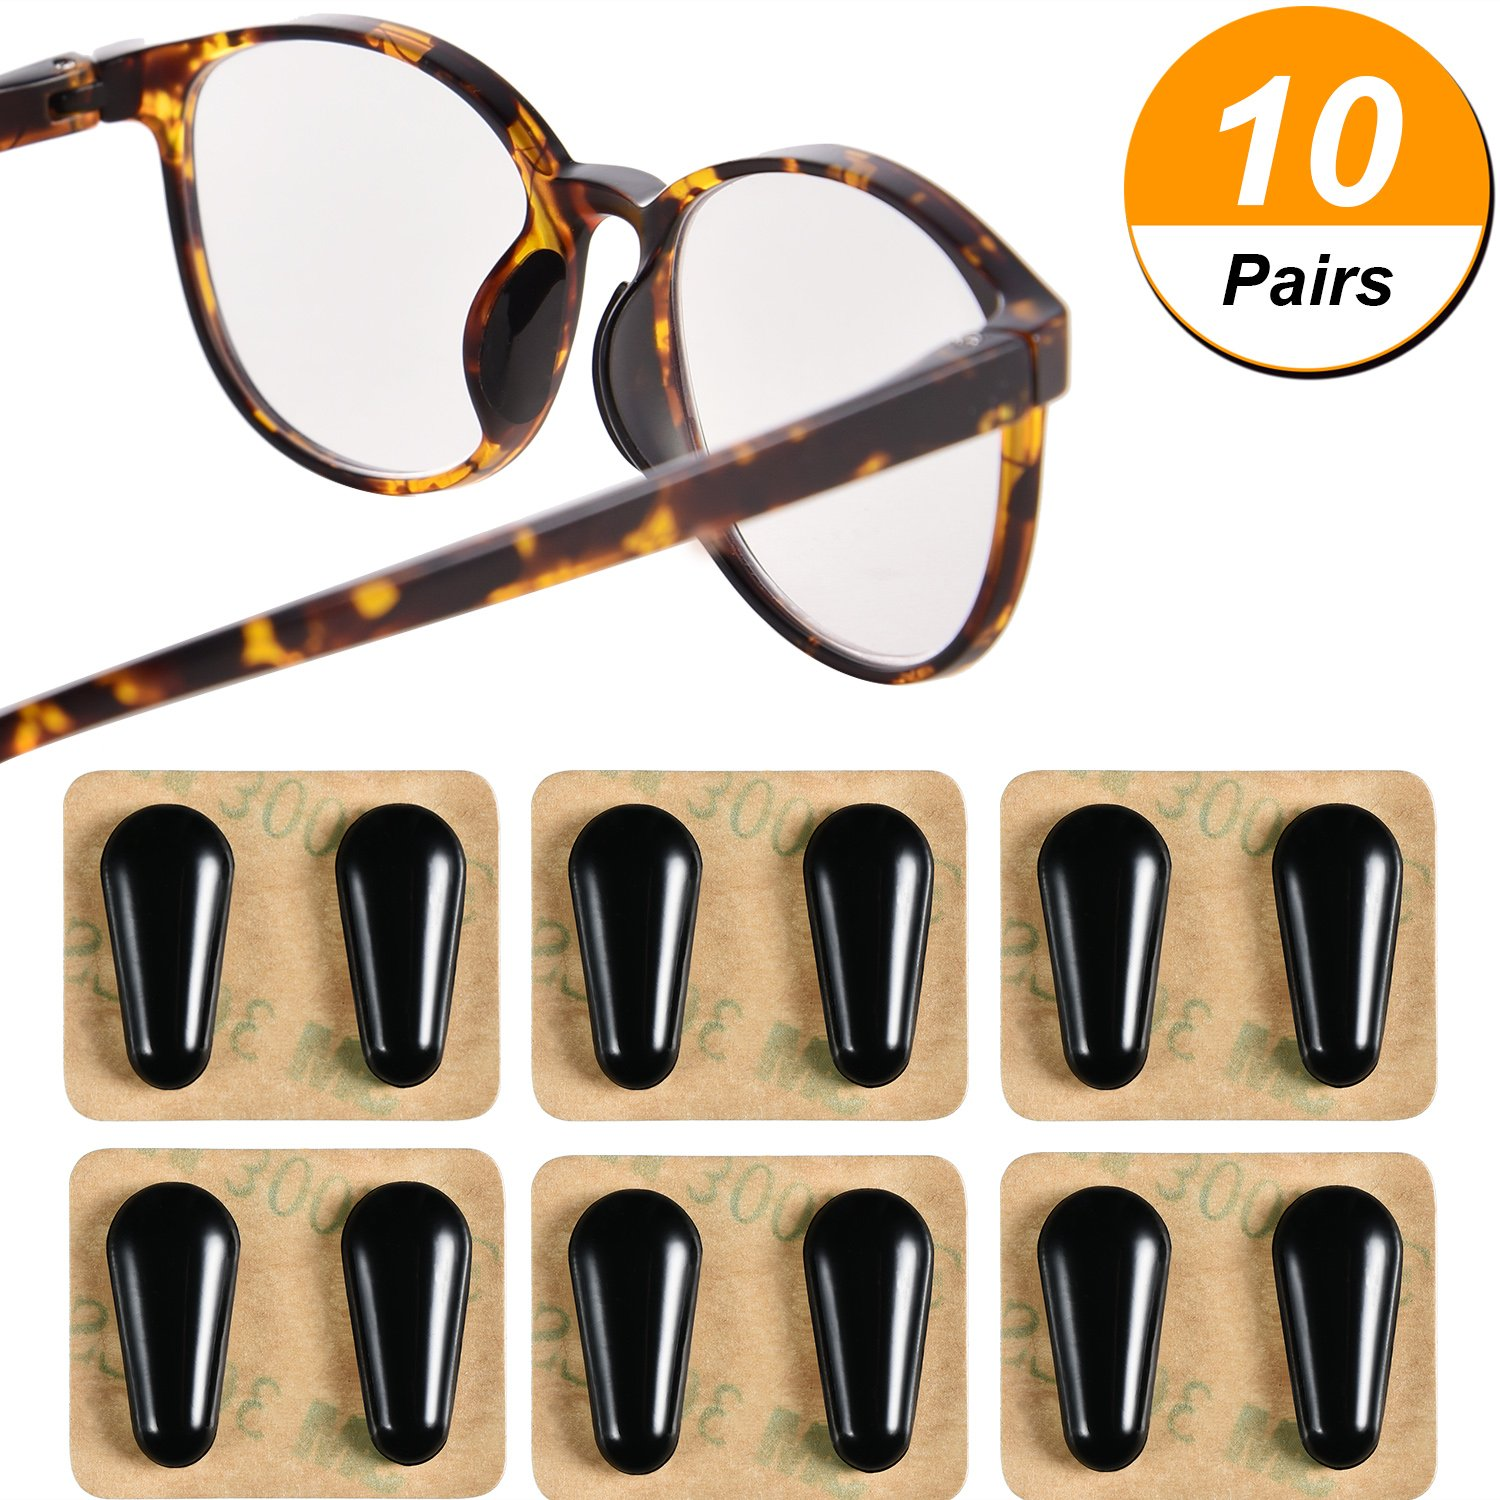 Learned Free Shipping Glasses Nose Pads Case Eyeglass Nose Pads Kit Including 15 Kinds Of Silicone Nose Pads Apparel Accessories